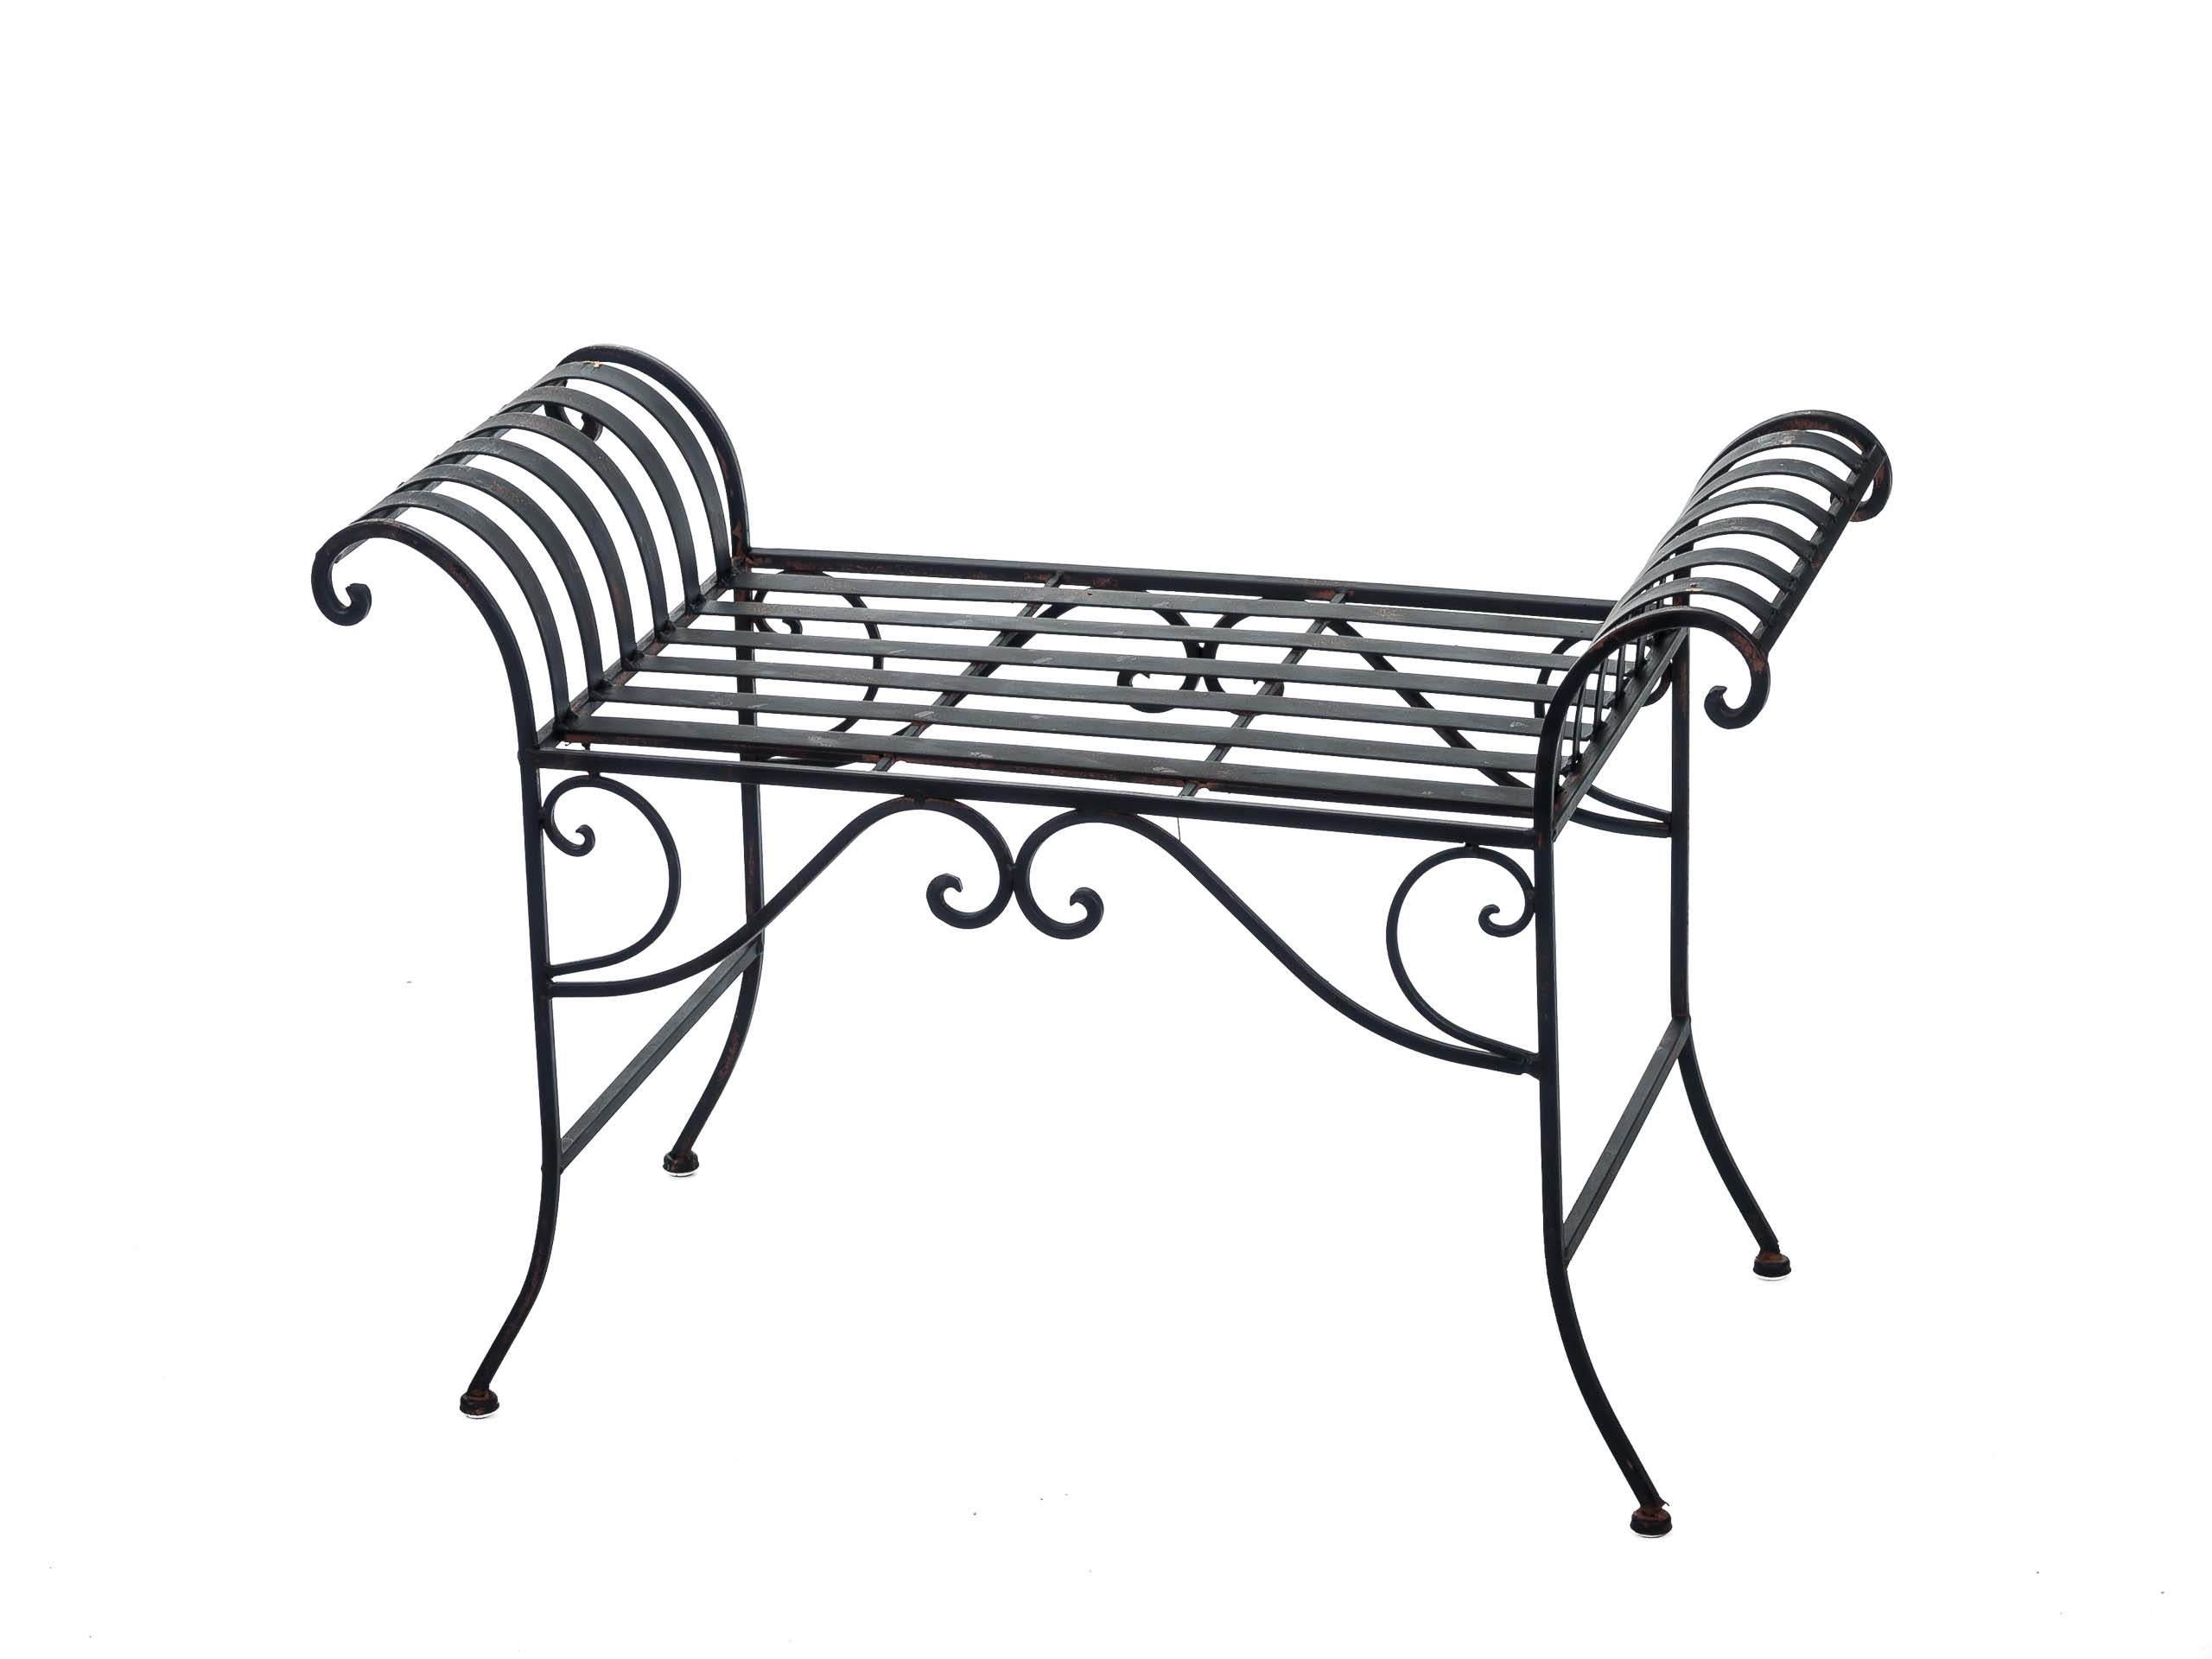 nostalgie gartenbank metall sitzbank antik stil bank hocker garden bench aubaho. Black Bedroom Furniture Sets. Home Design Ideas